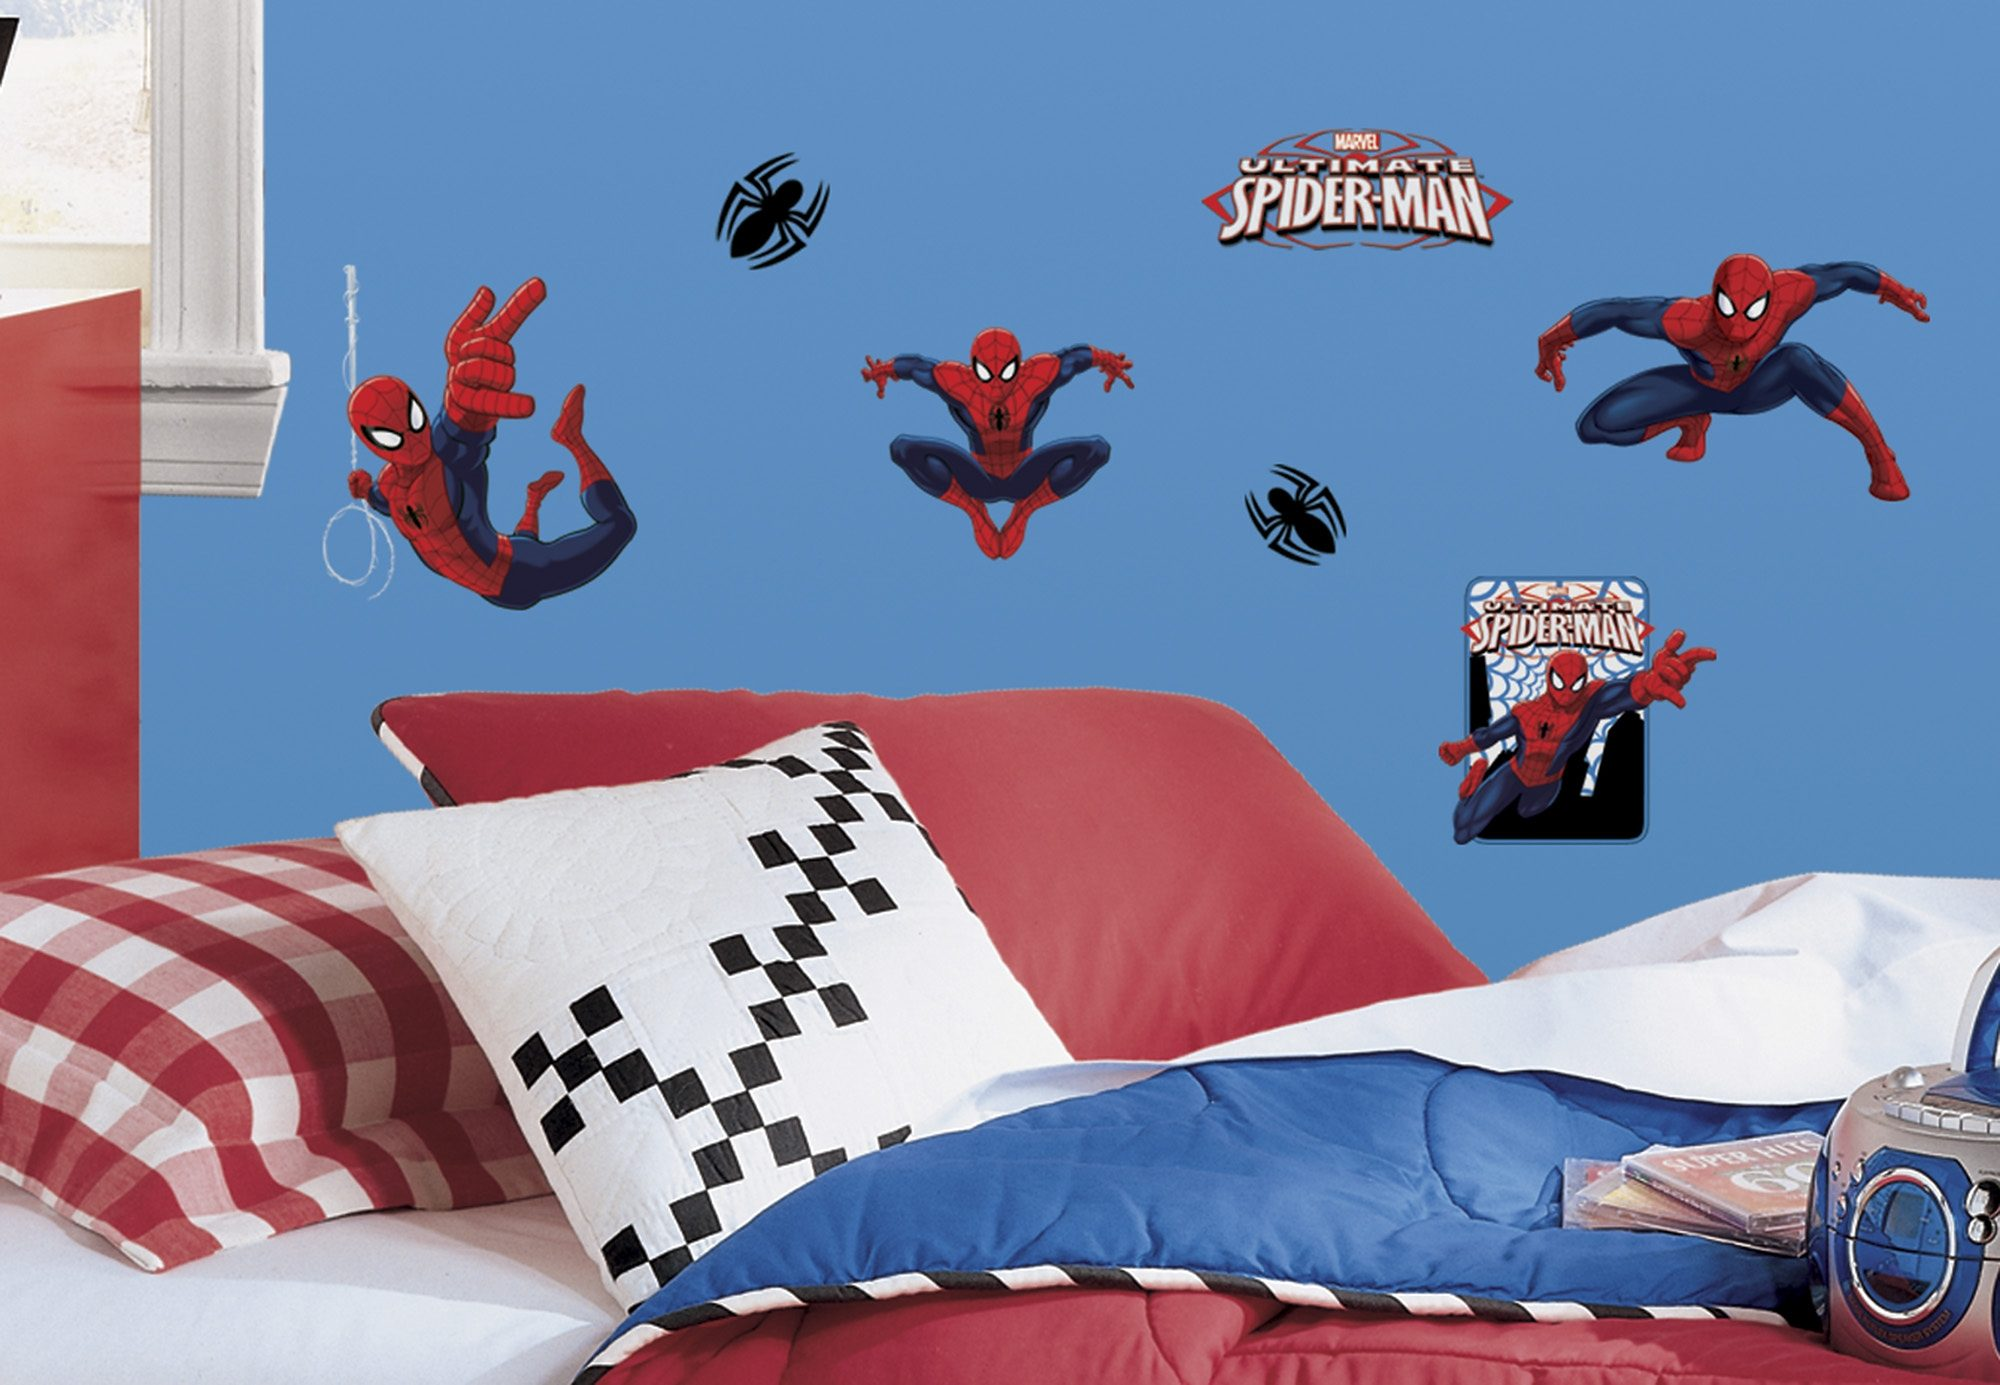 JOY TOY Wandsticker, »Spiderman Wandtattoos«